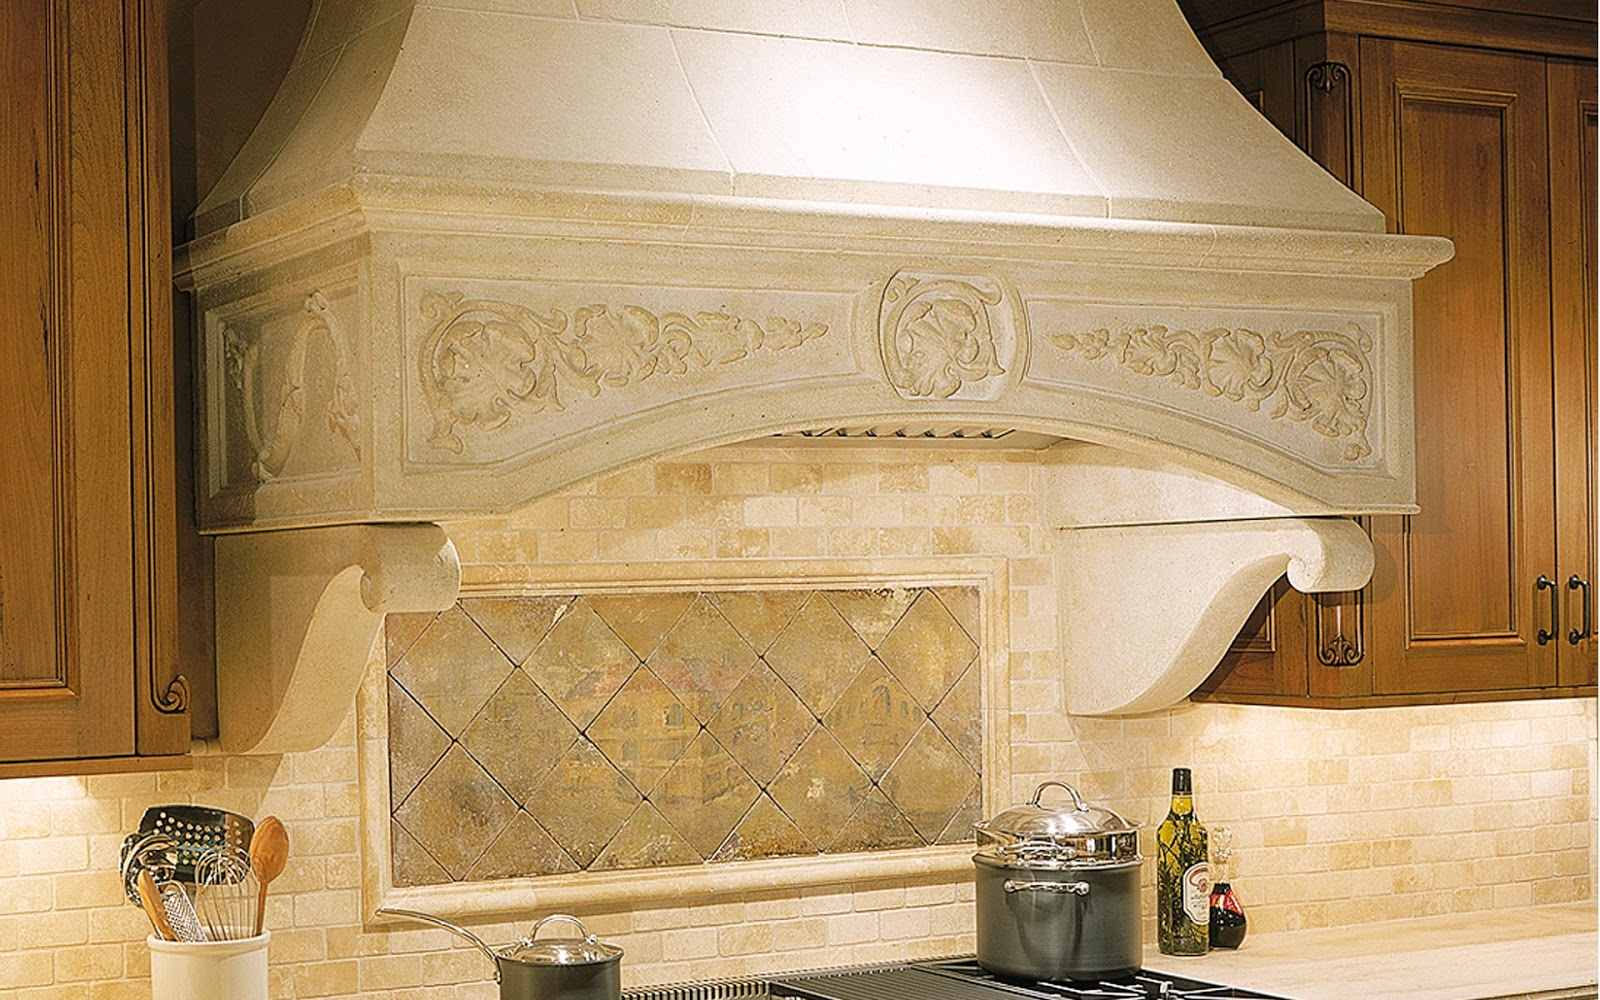 Decorative Range Hoods For Gas Stoves ~ Kcfauxdesign diy decorative hood range vent